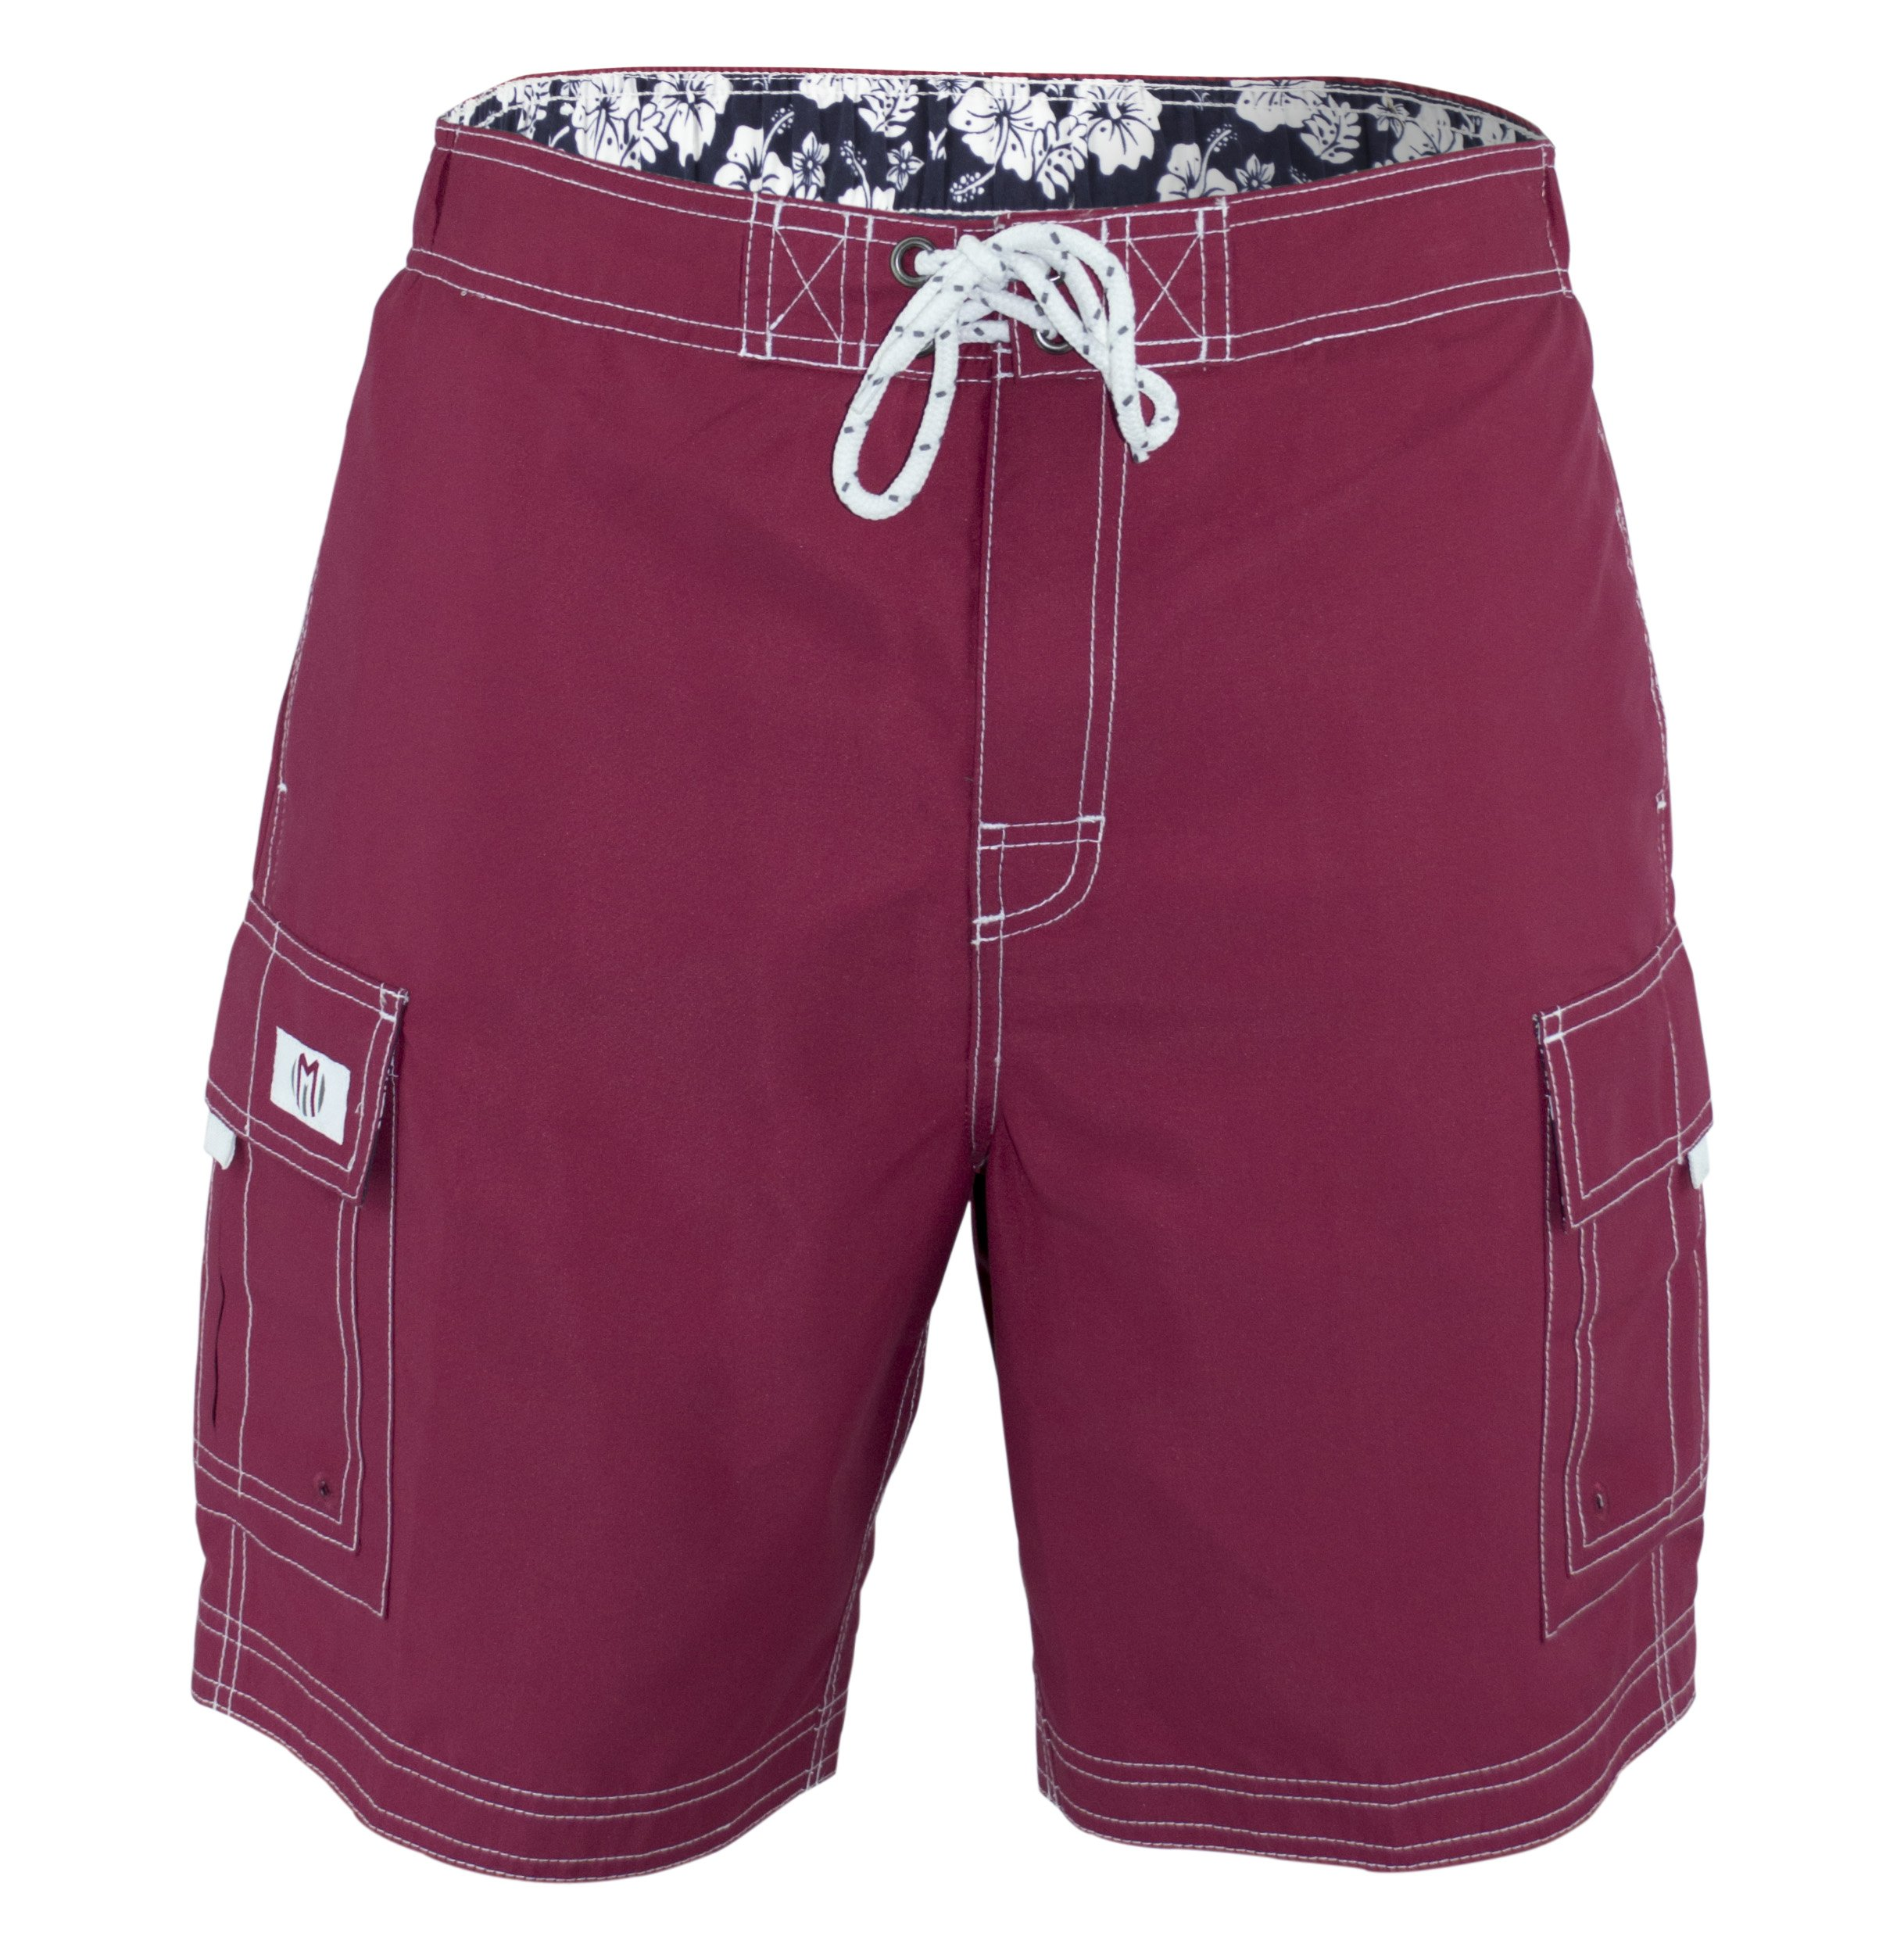 Matereek Men's Solid Color Cargo Trunks Style Microfiber Bathing Suit Red Large